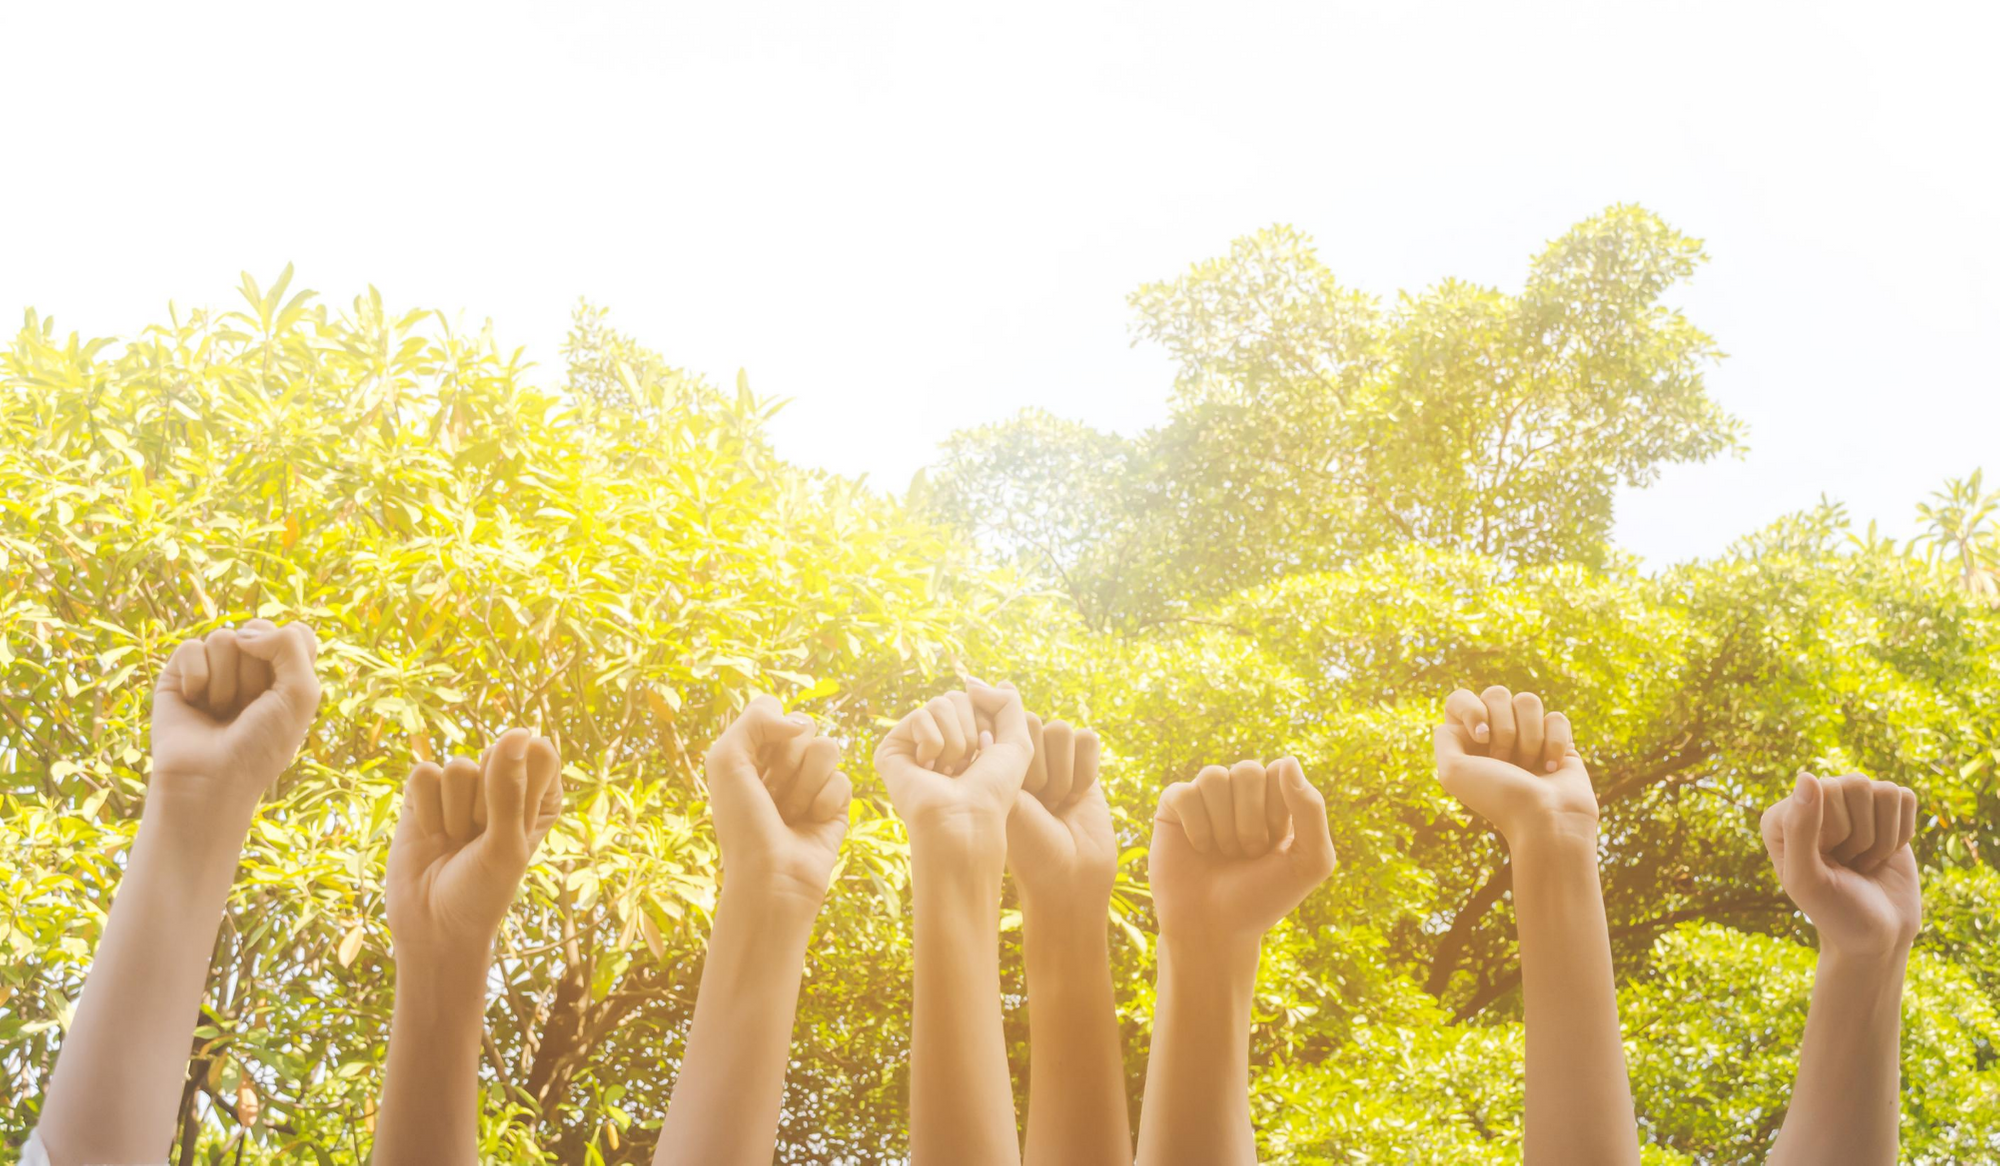 4 Nonprofits That Benefit From Their Online Communities